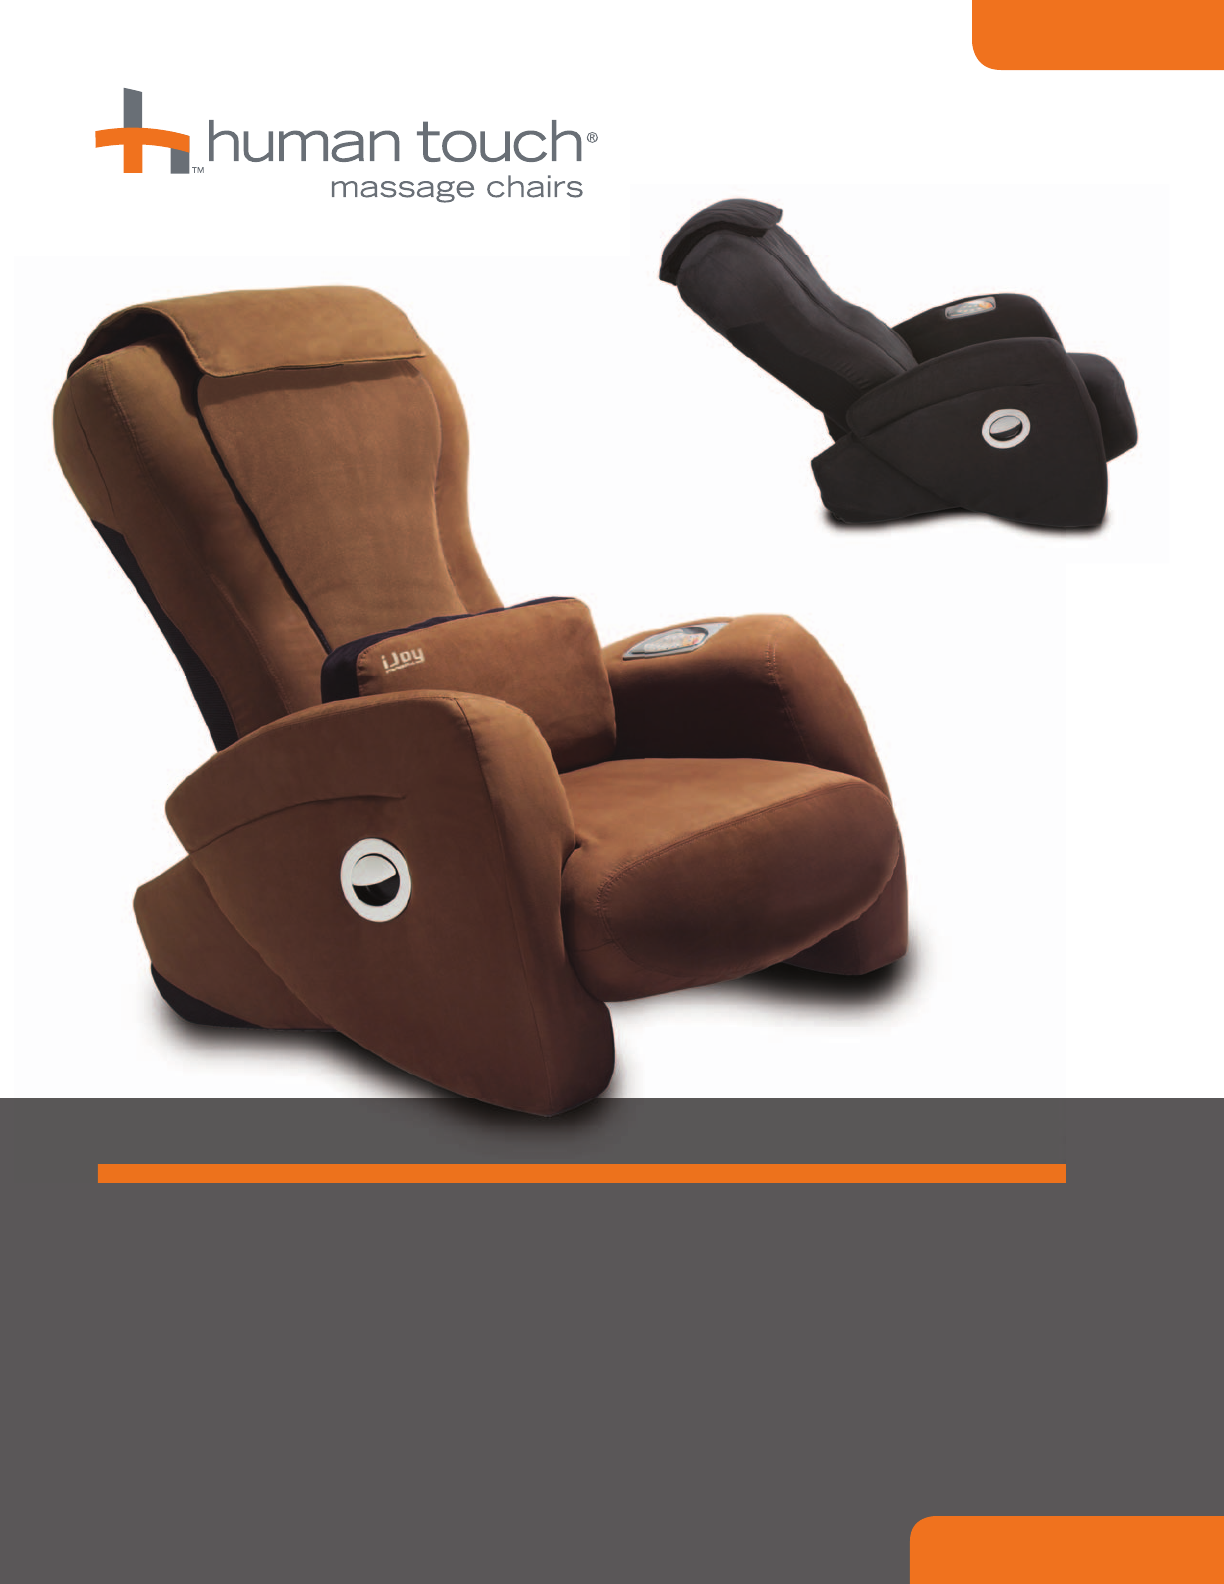 Ijoy 130 massage chair - Human Touch Ijoy 130 100 001 Wheelchair User Manual